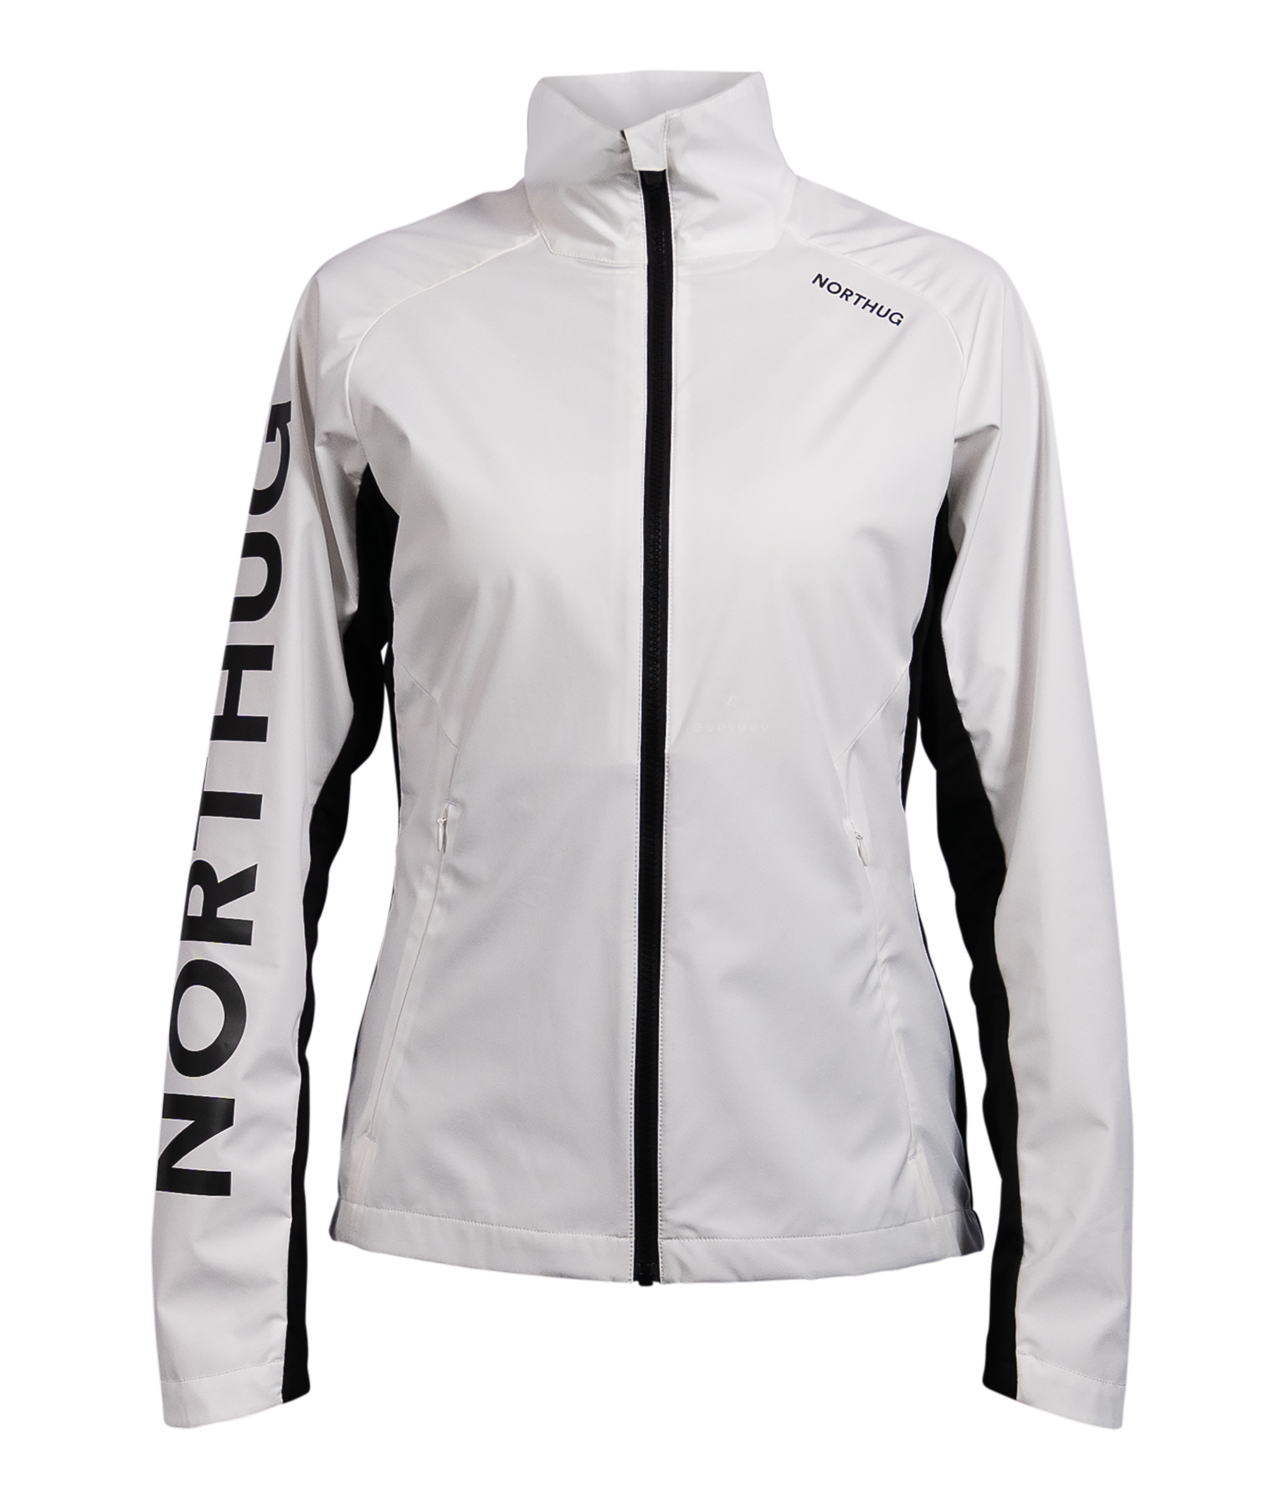 Northug  Cavalese tech jacket Wmn